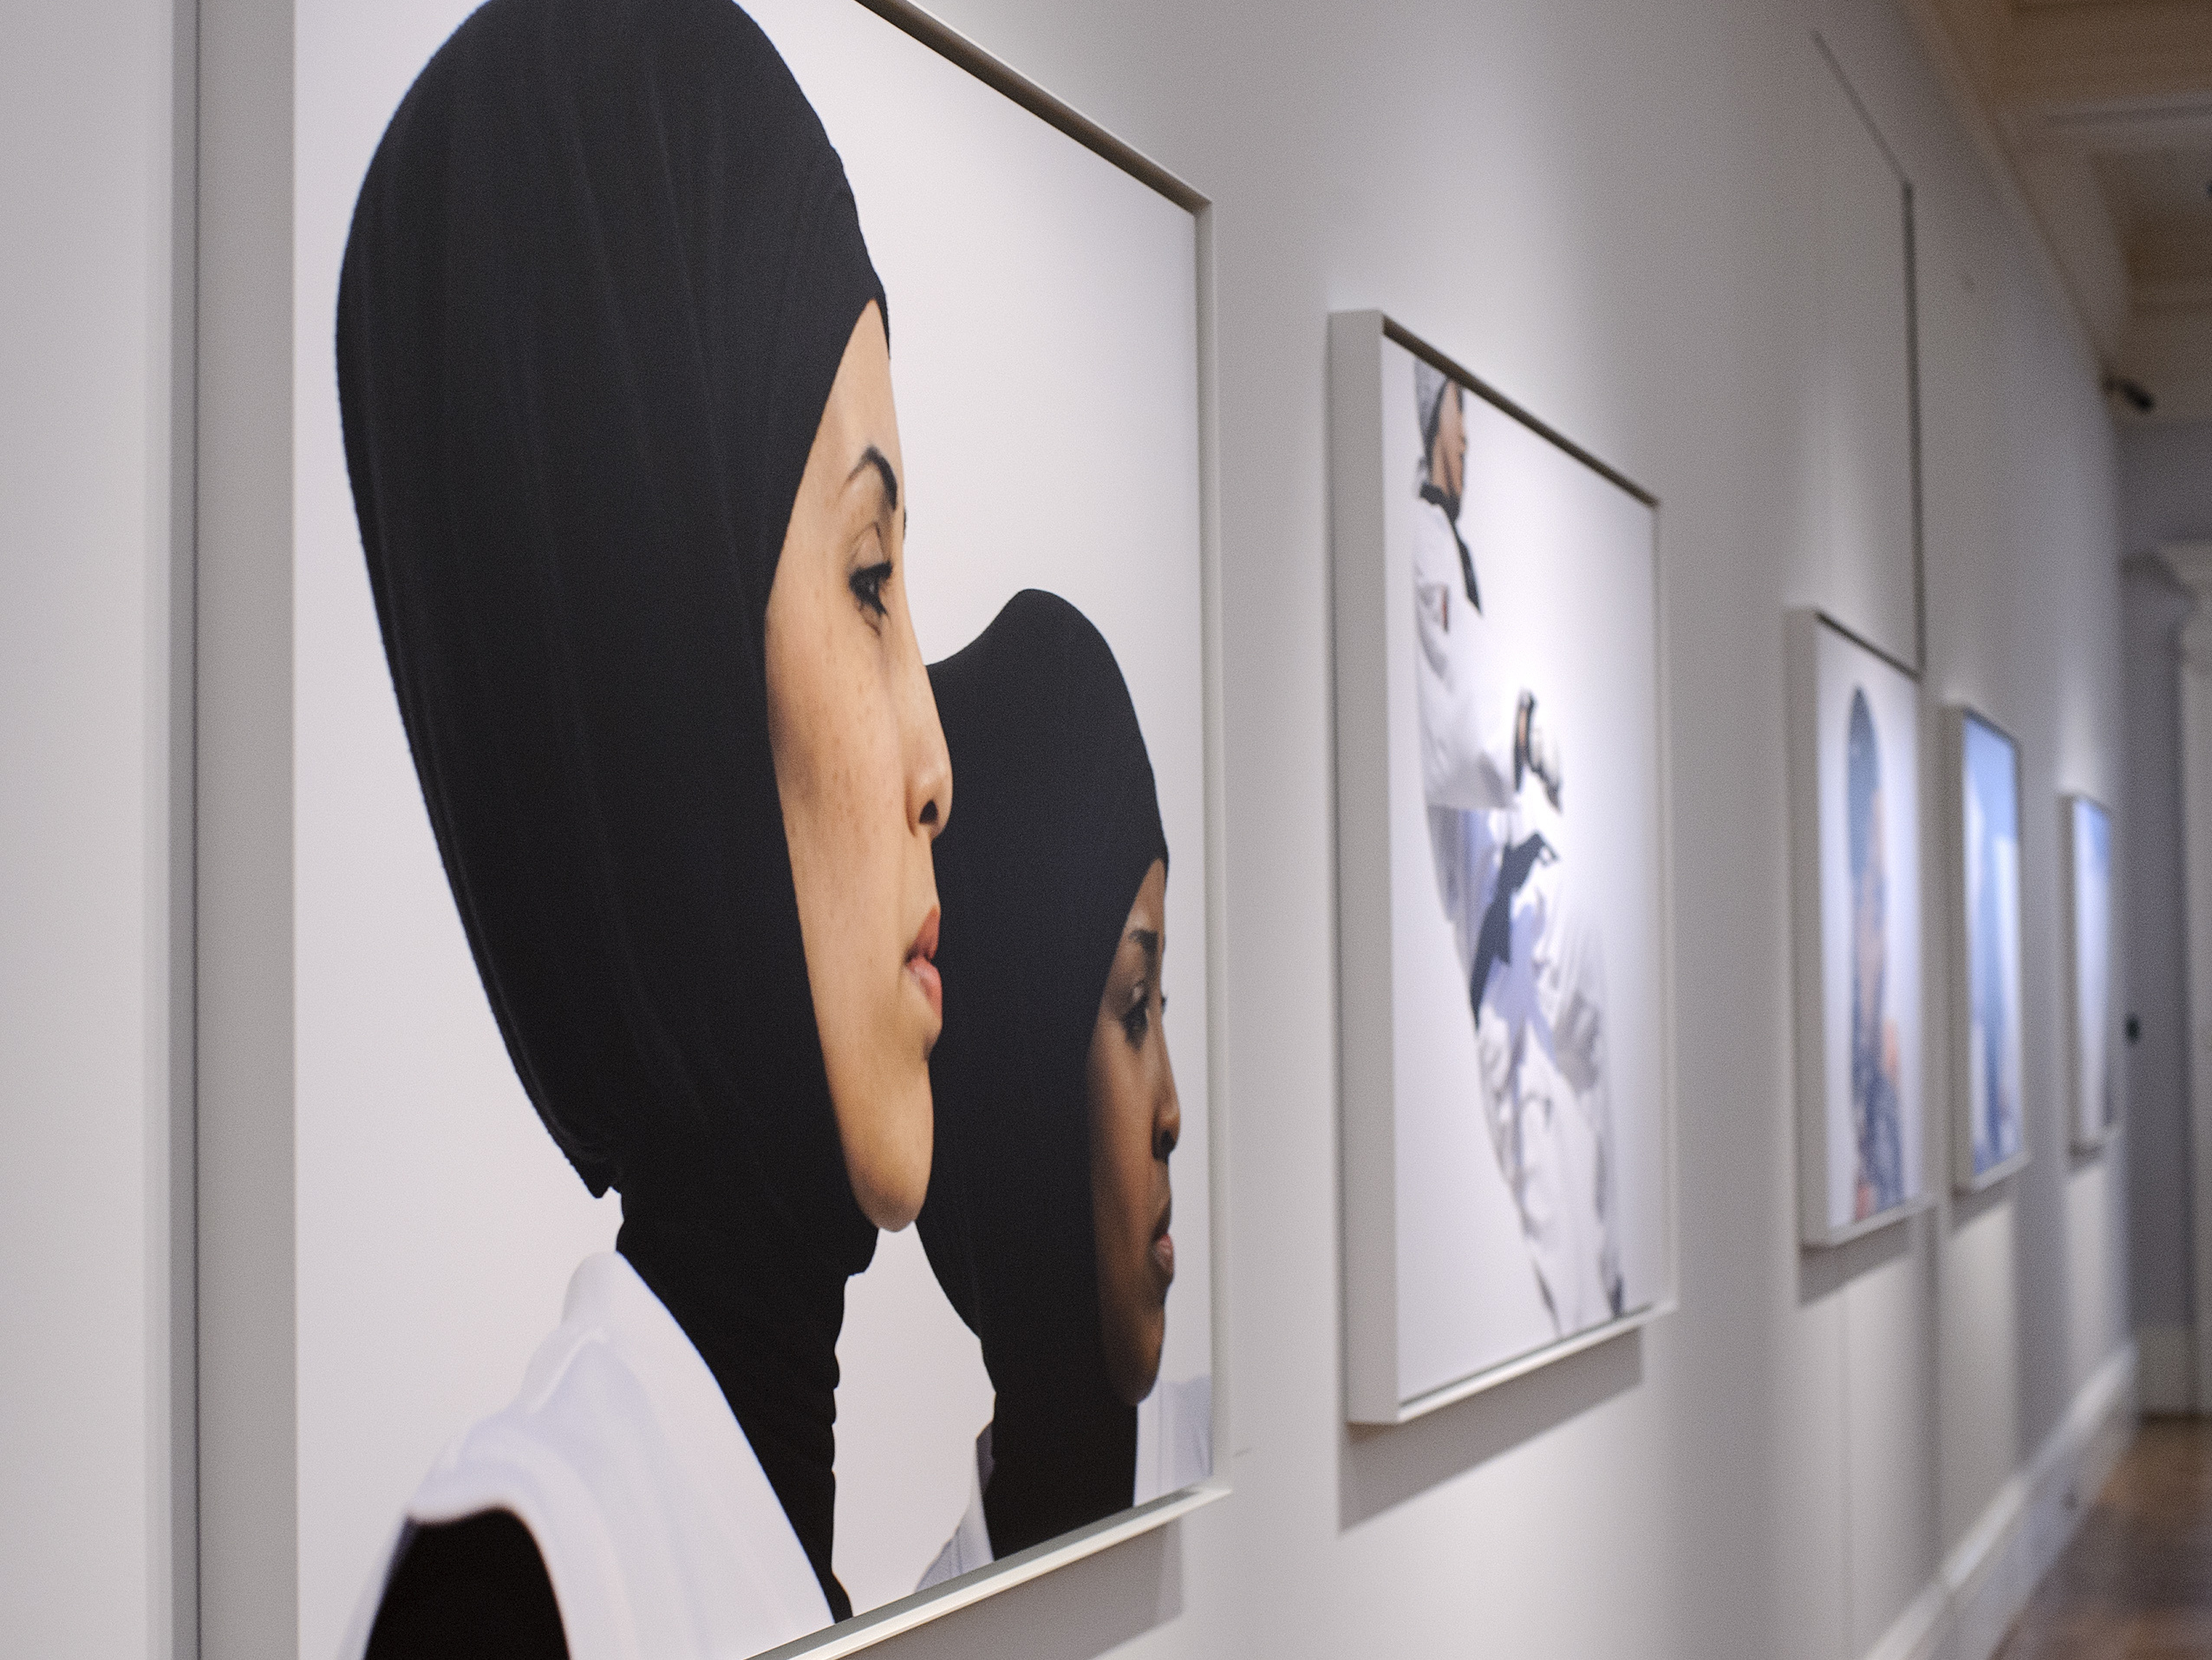 Photos hang at the opening of Hey'Ya Arab Women In Sport by Brigitte and Marian Lacombe at Sotheby's auction house in London.